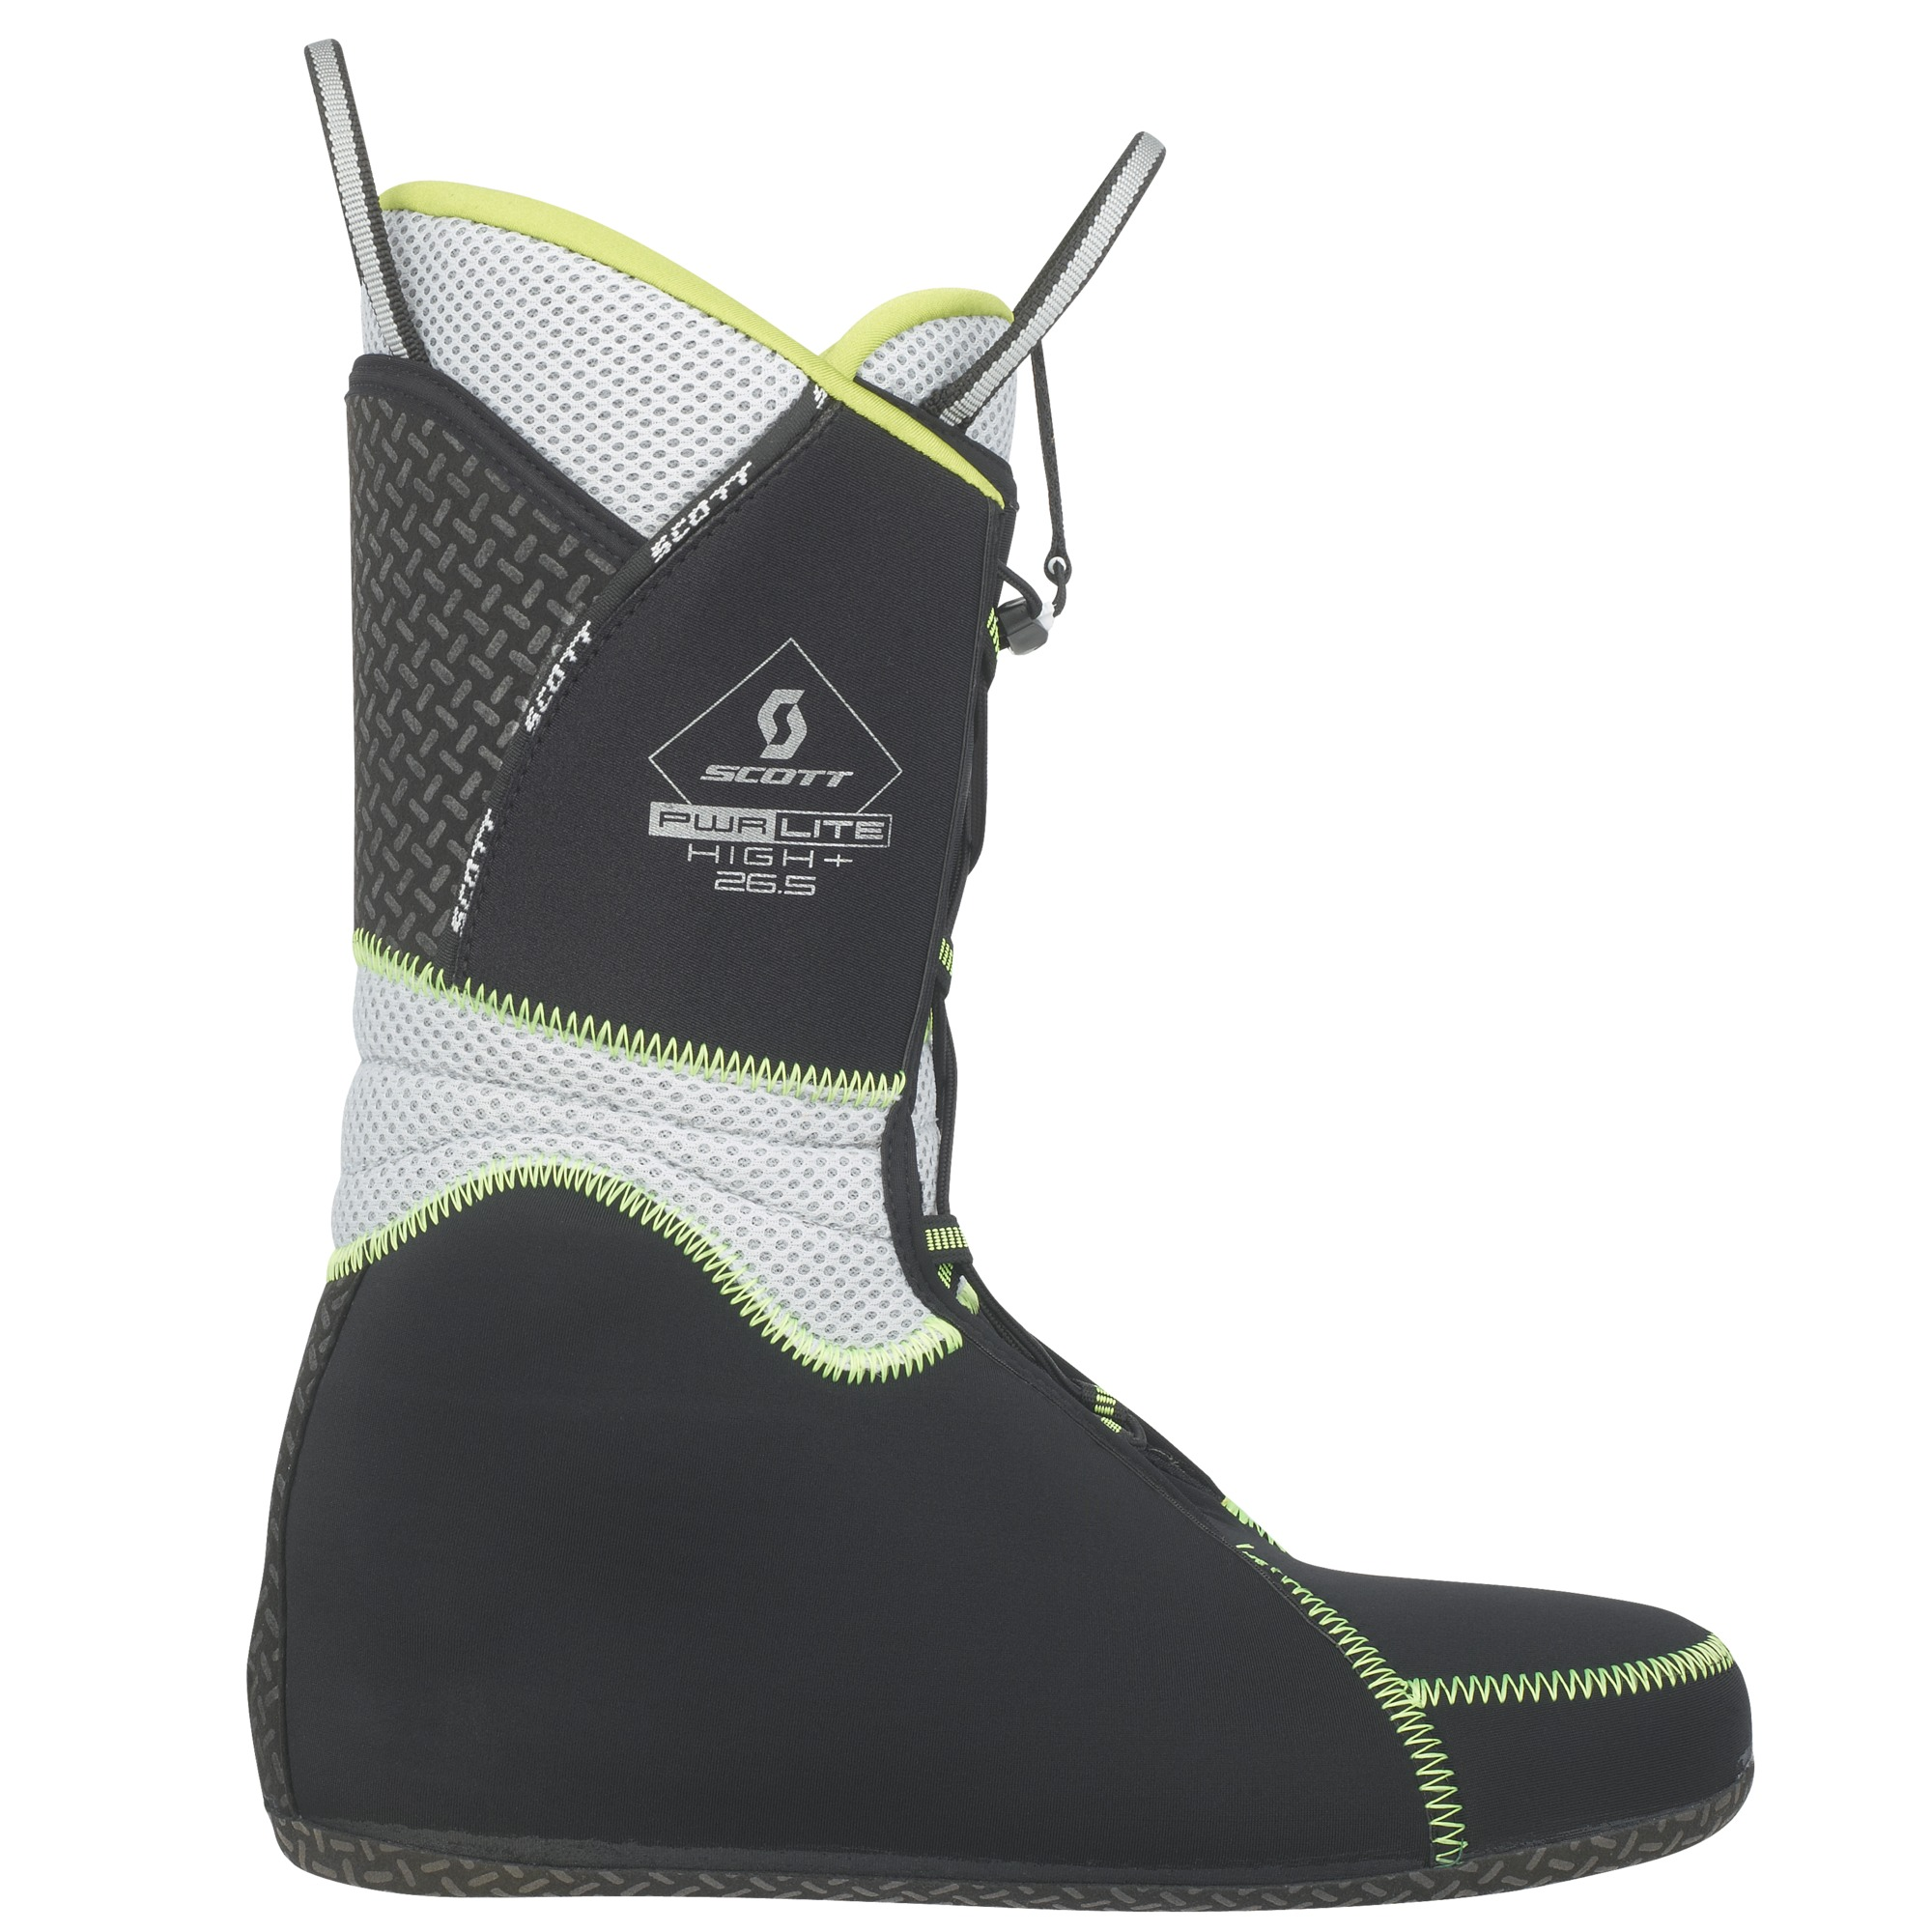 Chaussure de ski SCOTT Superguide Carbon